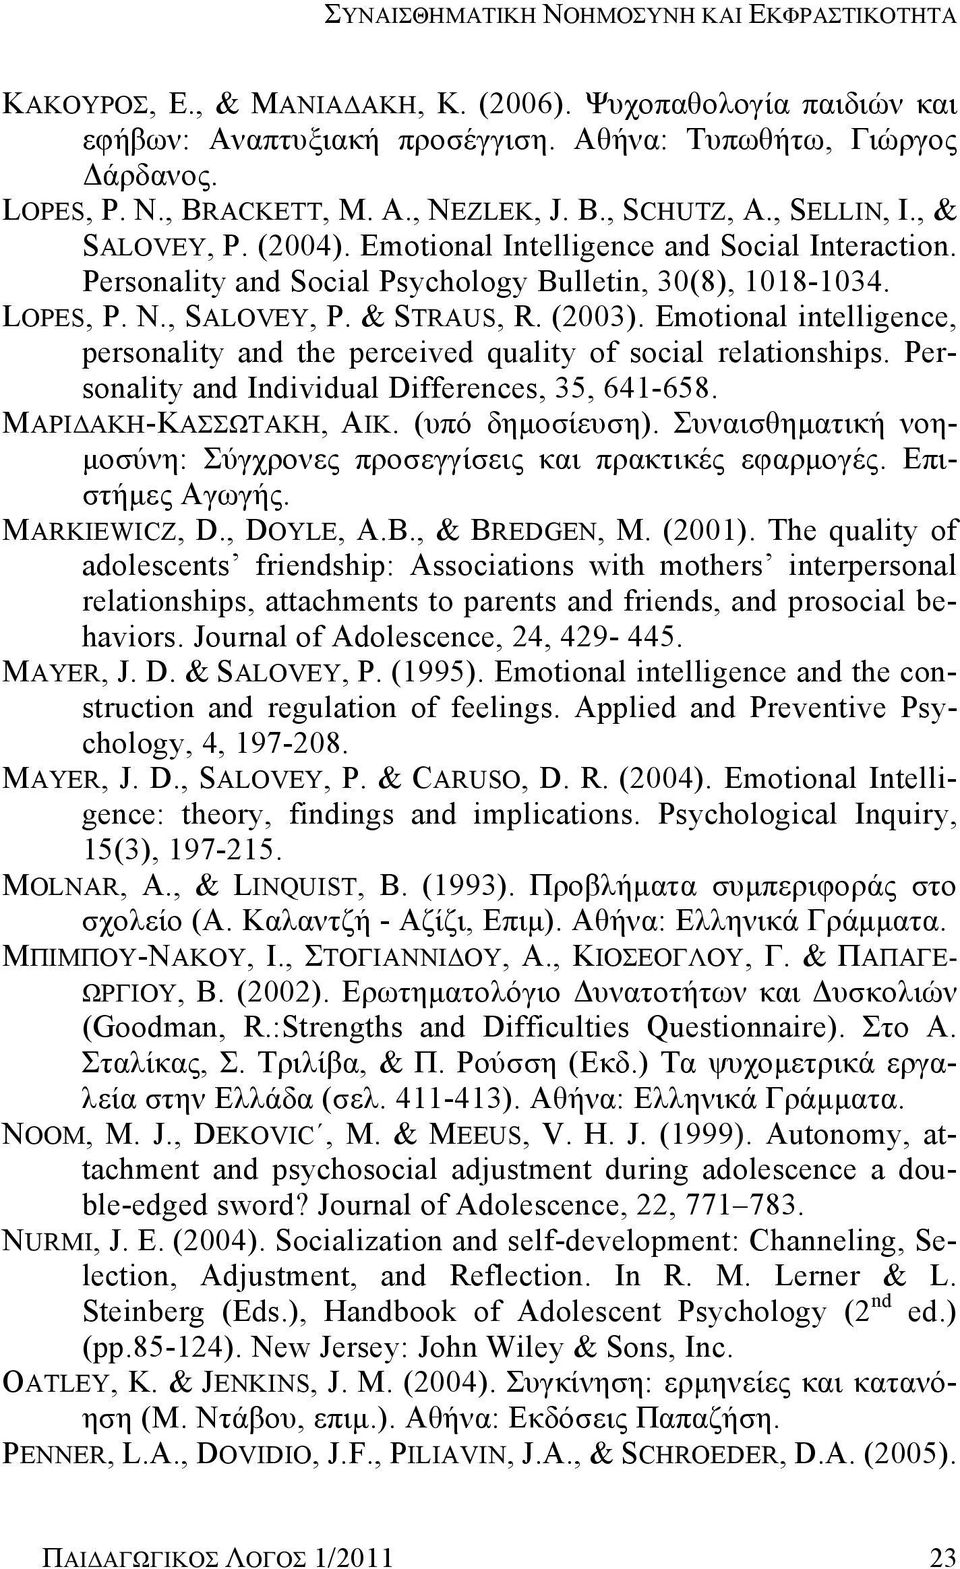 N., SALOVEY, P. & STRAUS, R. (2003). Emotional intelligence, personality and the perceived quality of social relationships. Personality and Individual Differences, 35, 641-658.